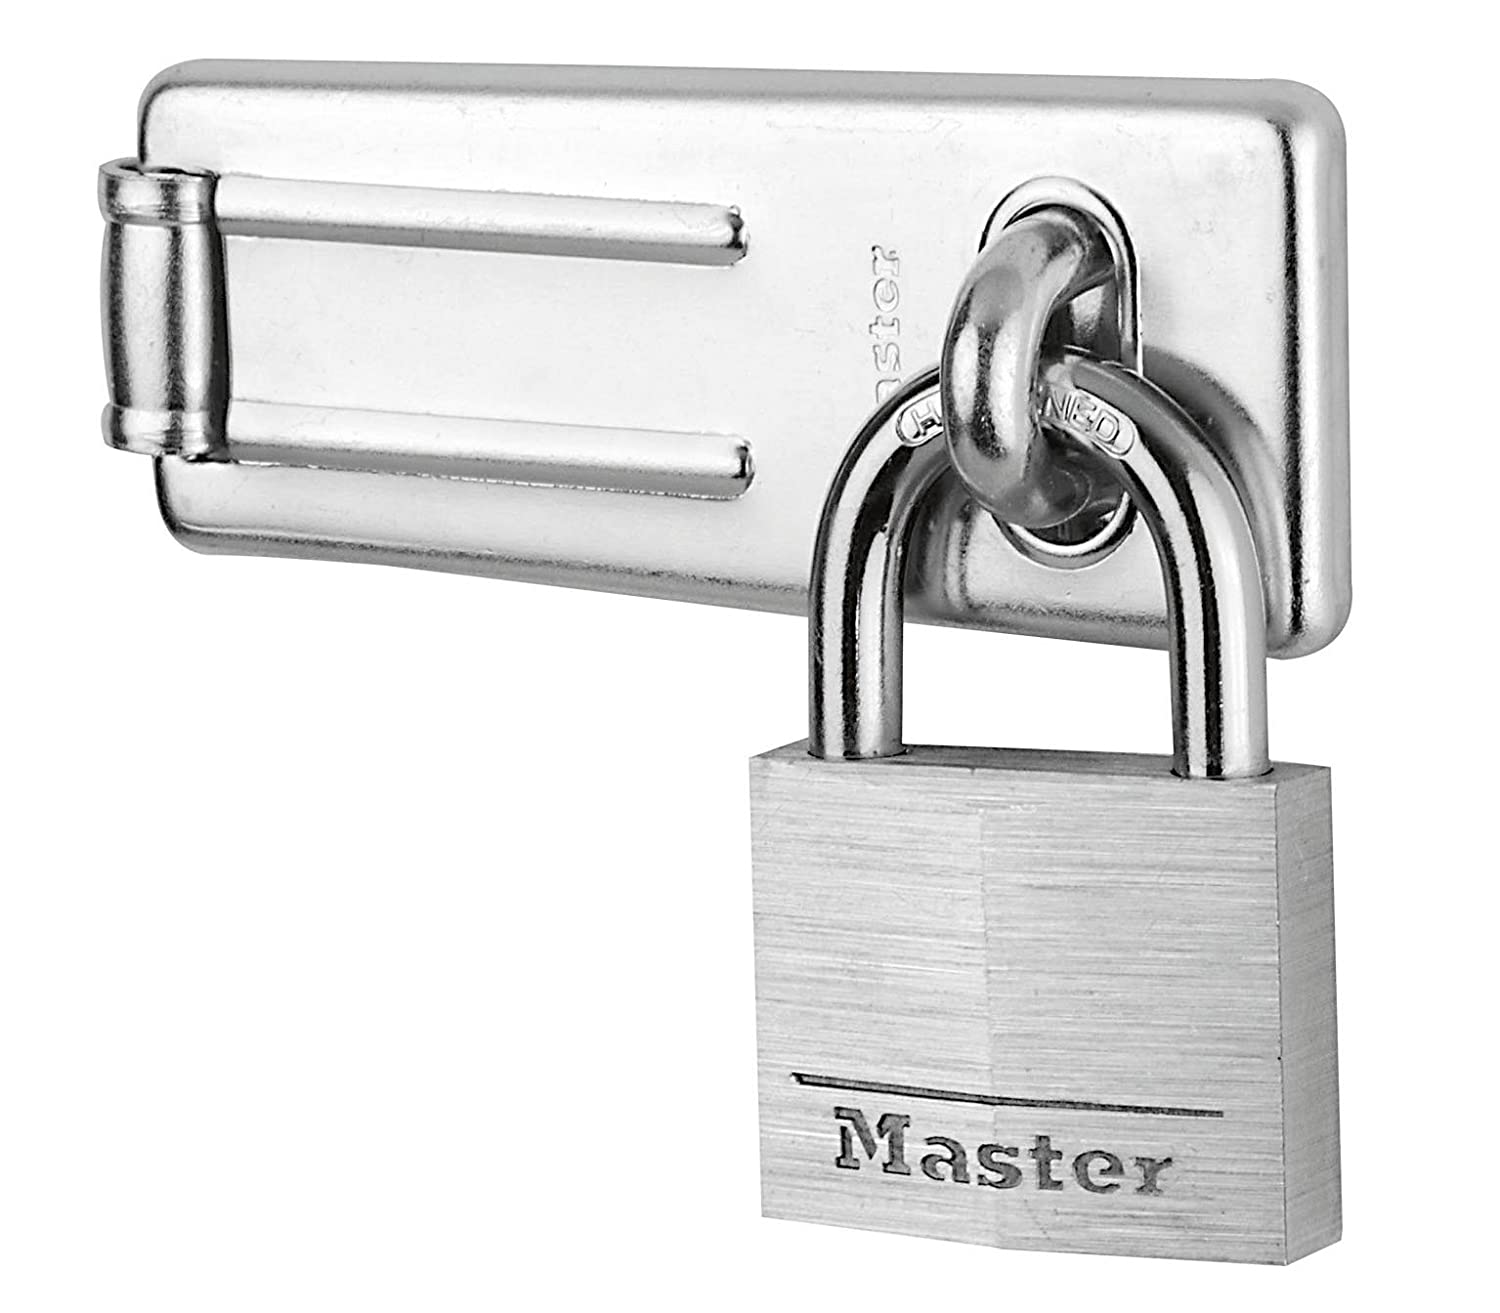 Master Lock Hasp Lock, Chrome Plated Steel Hasp, Best Used as a Gate Lock, Shed Lock, Cabinet Lock and More 9140703EURD